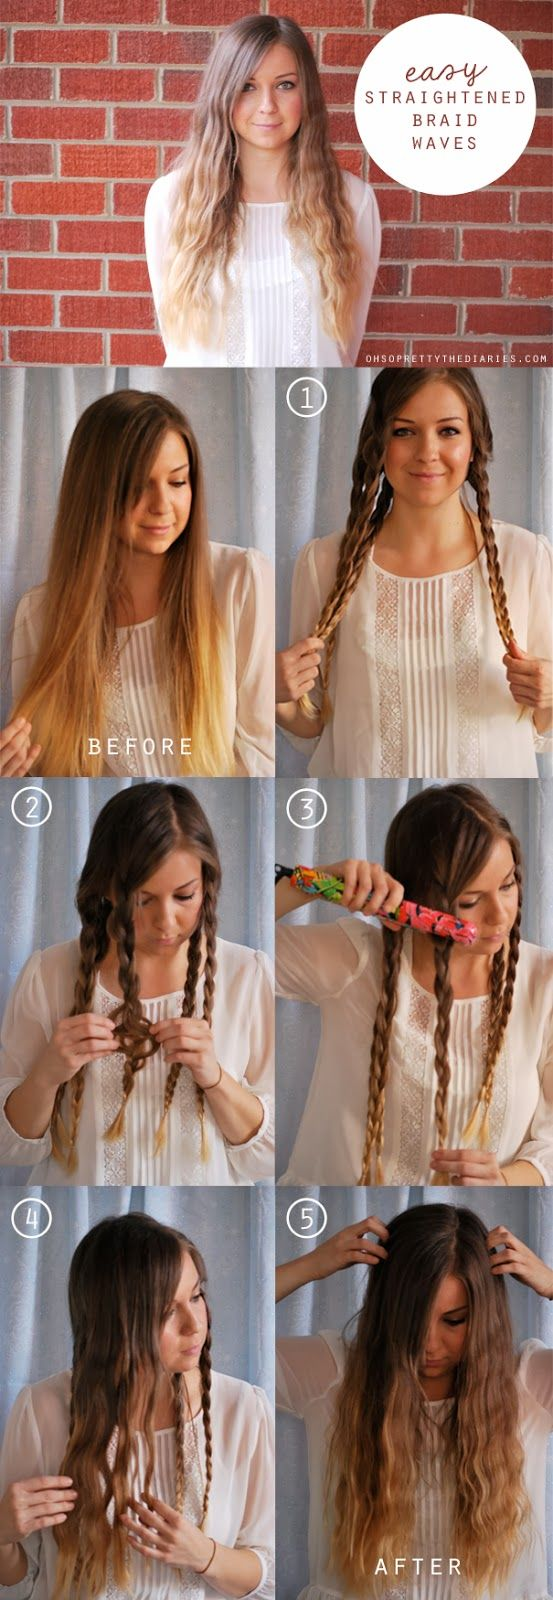 Hey Wanderer: tutorial: straightened braid waves